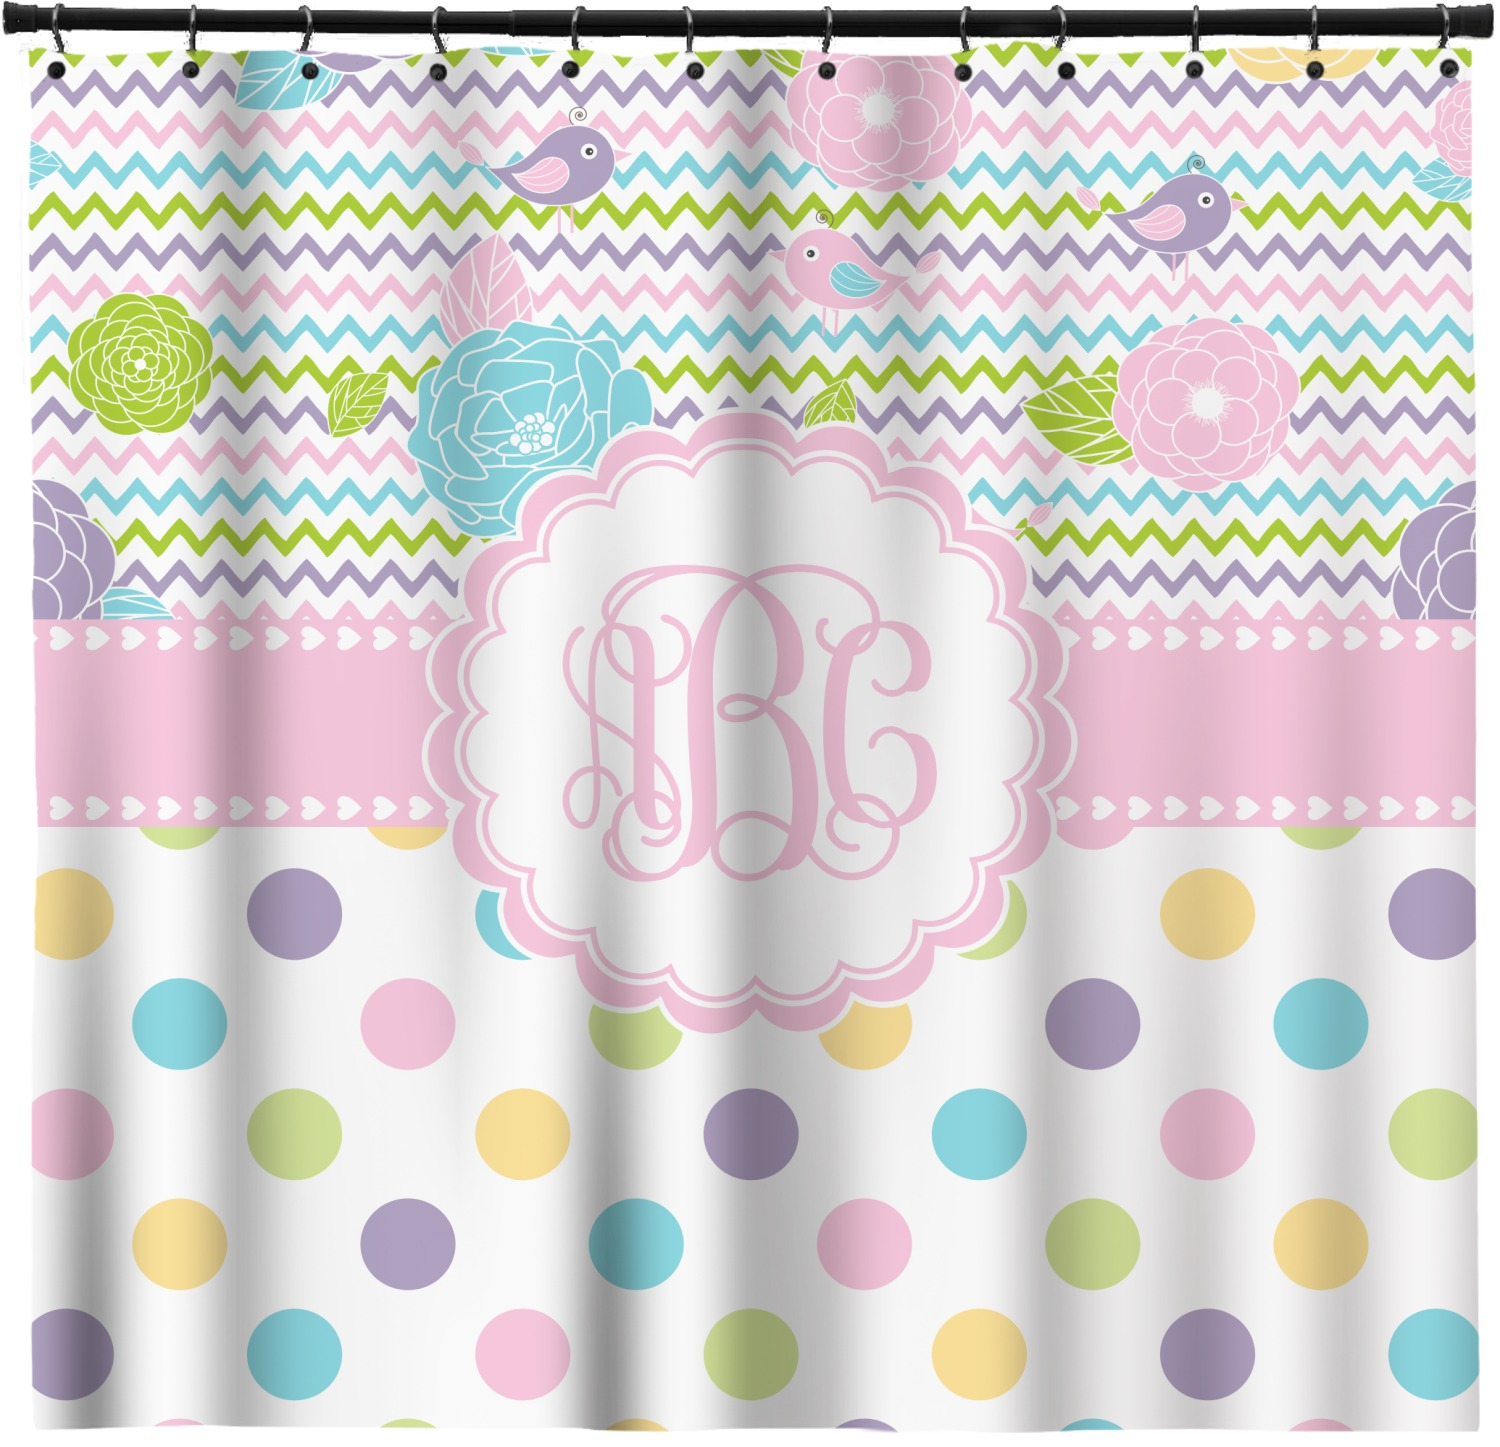 Cute Girly Shower Curtains Girly Girl Shower Curtain Personalized